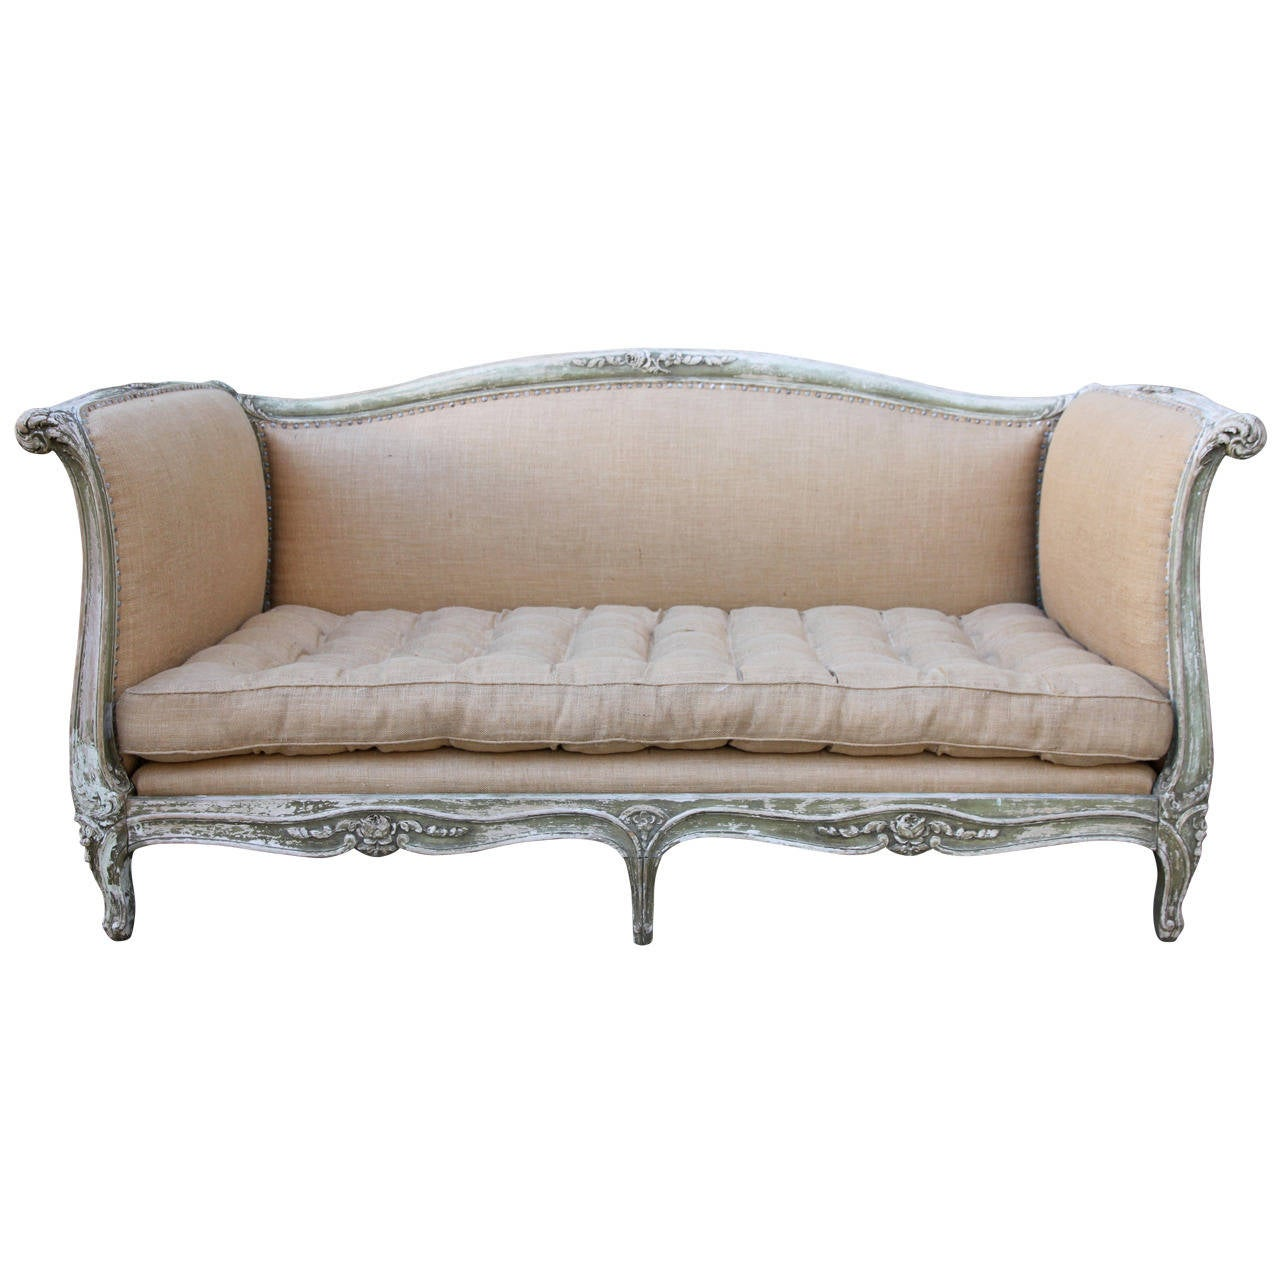 French carved painted louis xv style sofa at 1stdibs for French divan chair